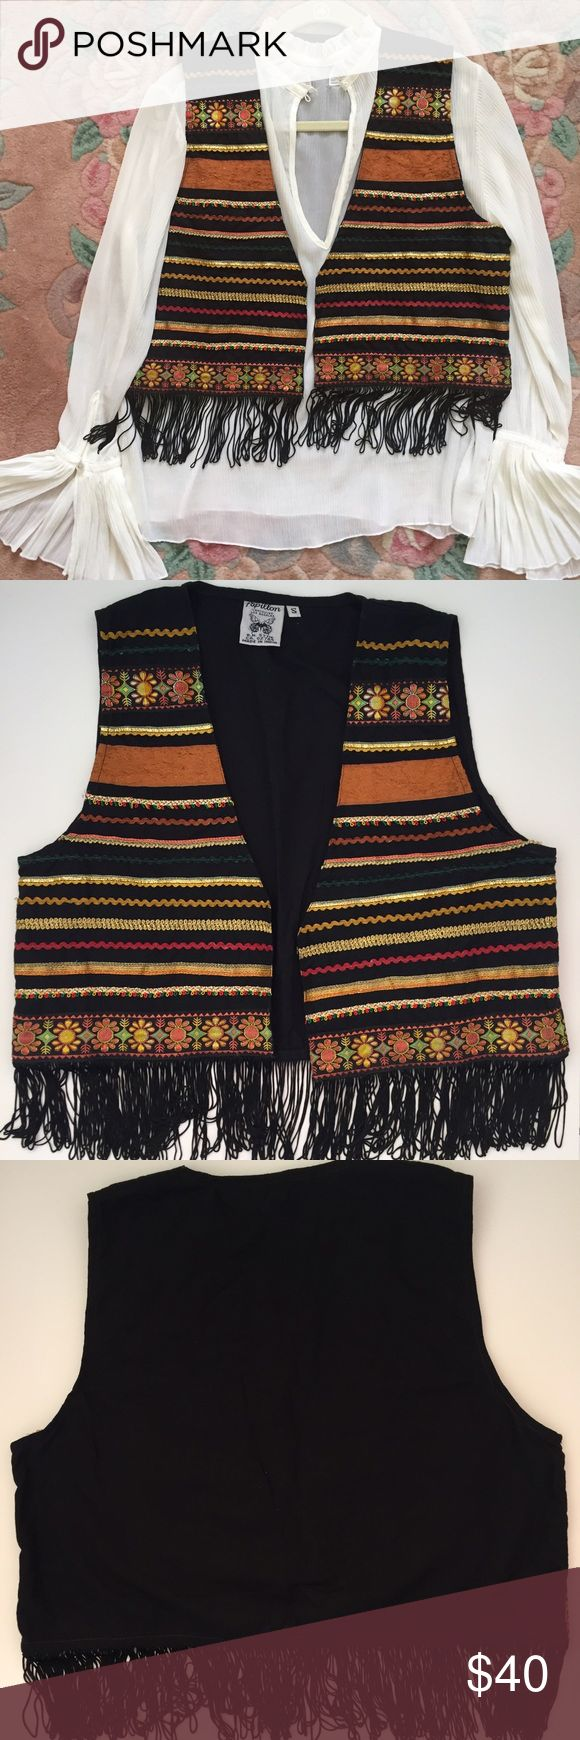 "Papillon Bohemian Fringe Vest Super cute vest with black fringe. Embroidered ribbon and rick rack trim. Size small. Looks super cute with a boho flowy blouse. Measures 21"" from shoulder to bottom of fringe. Says size small but could fit up to a medium. Like new. Made in India. Papillon Jackets & Coats Vests"